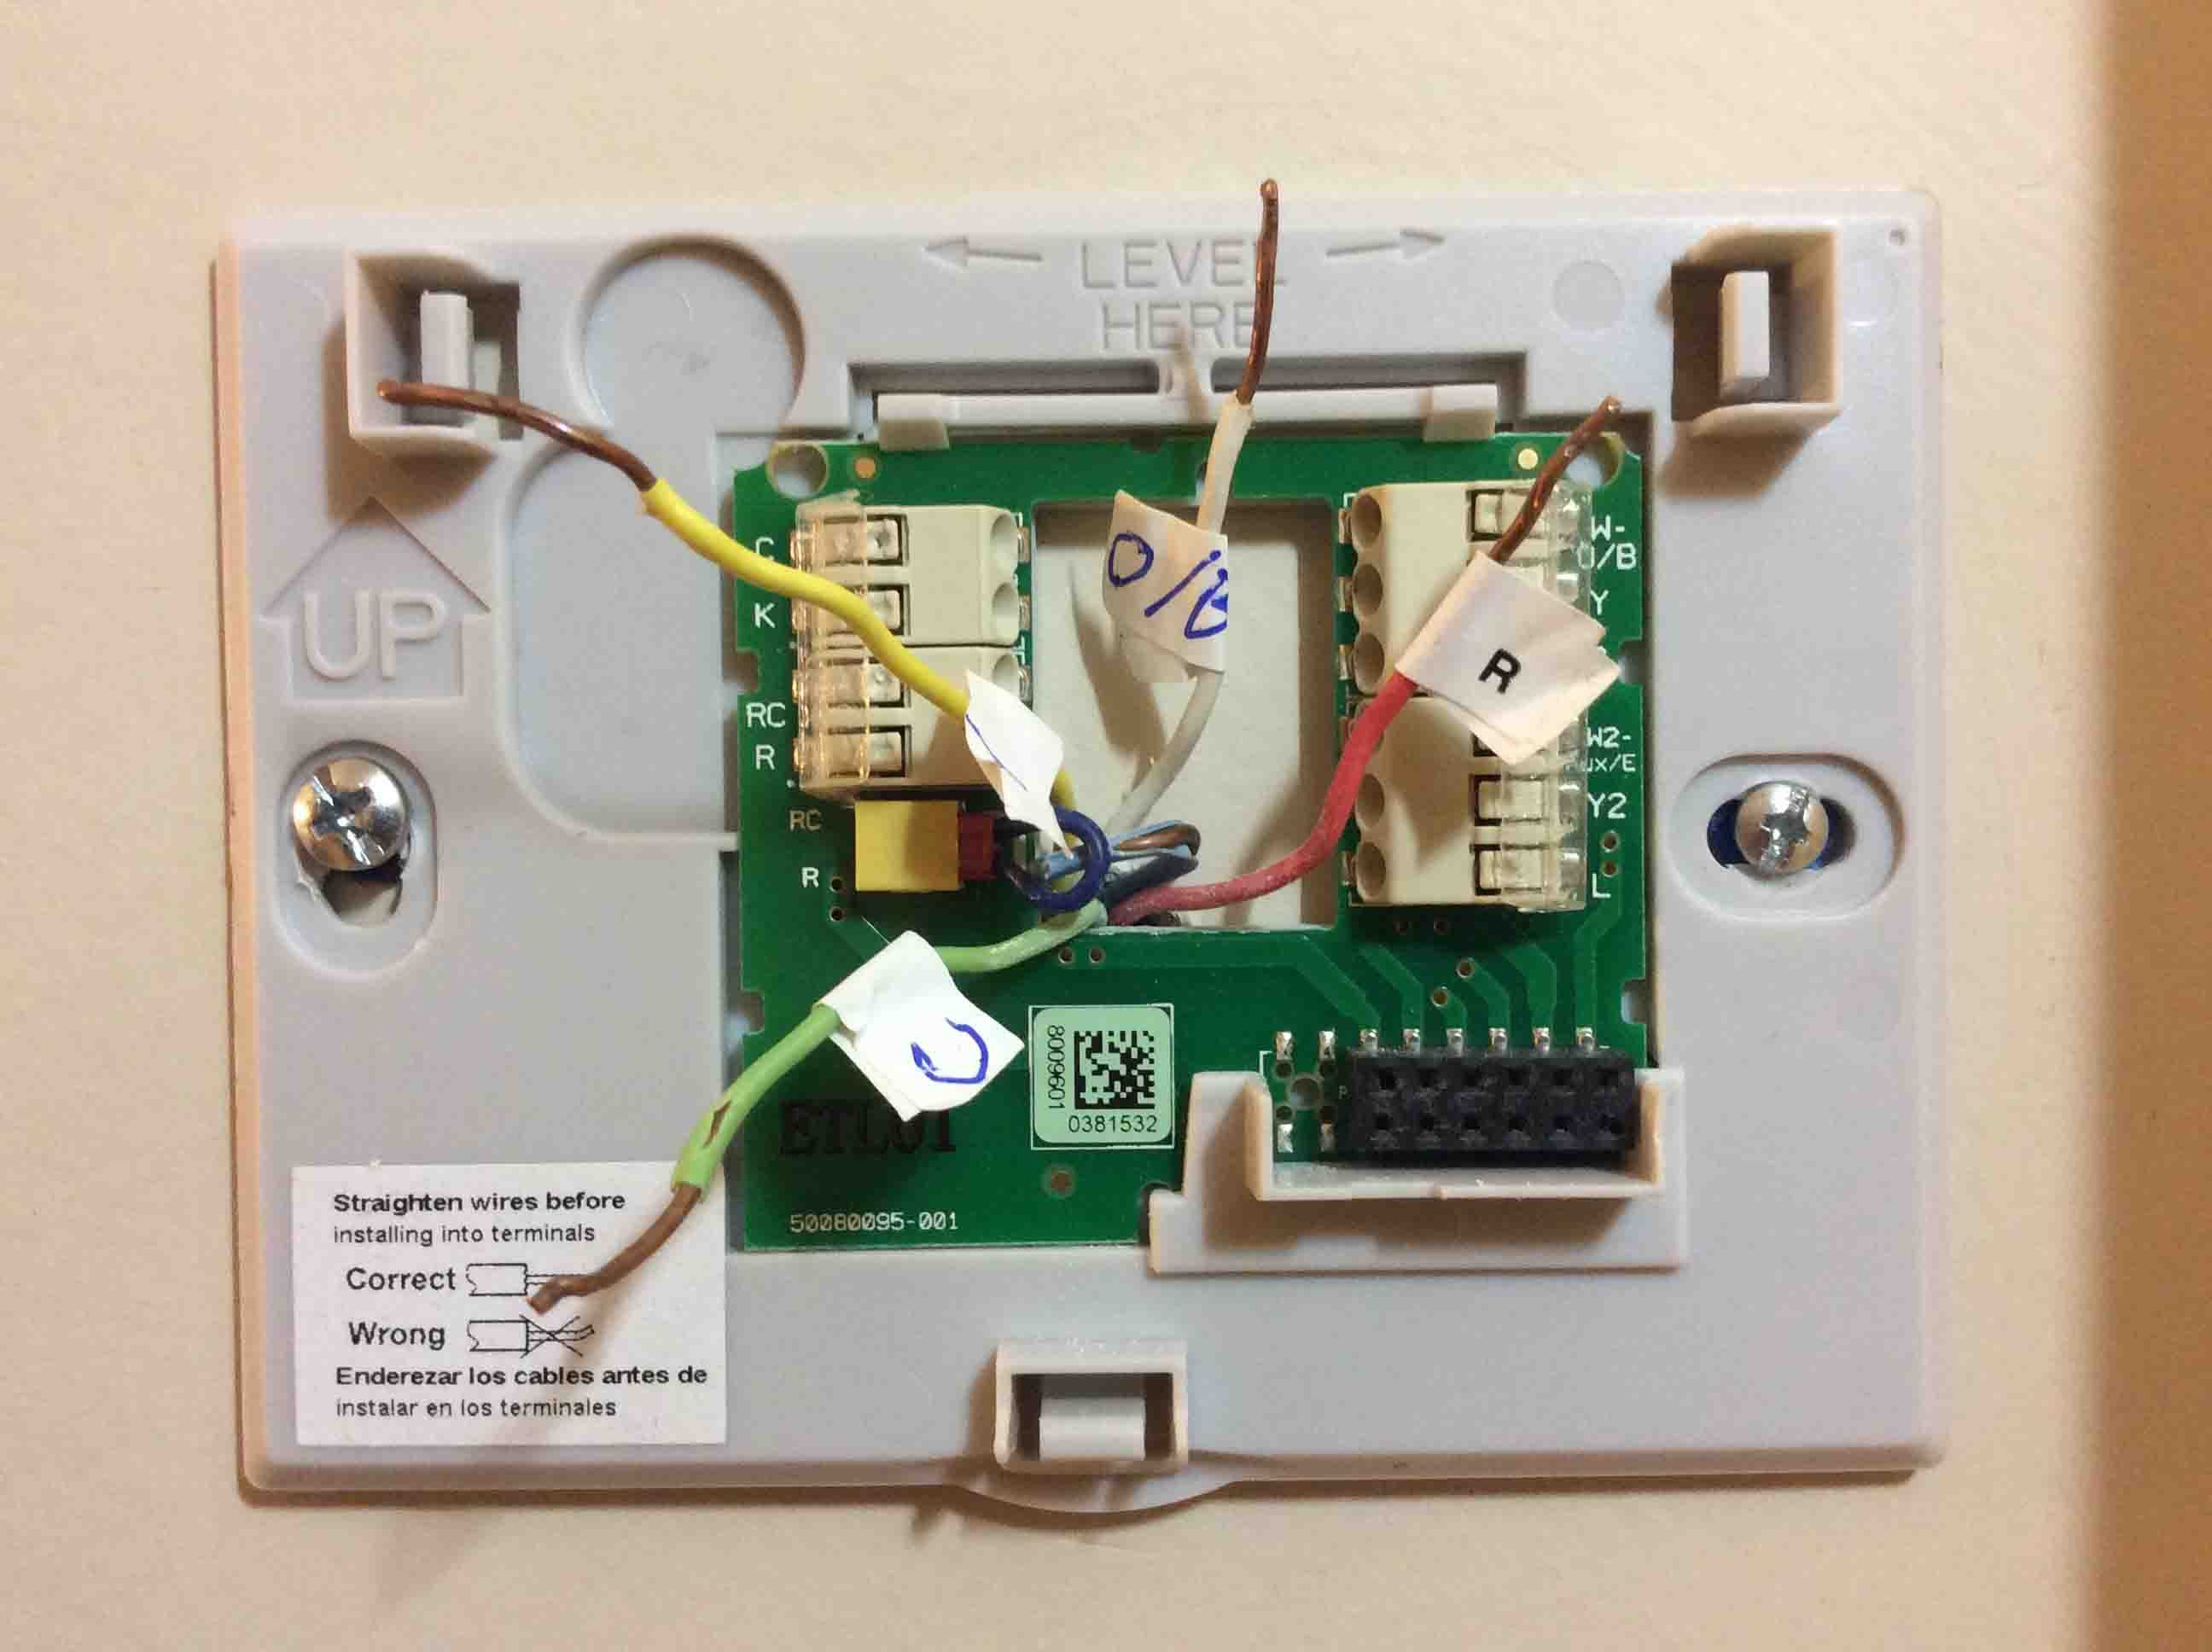 Honeywell Smart Thermostat Wiring Instructions Rth9580Wf | Tom's Tek - Round Nest Thermostat Honeywell Wiring Diagram For Heatpumps With X2 Terminal